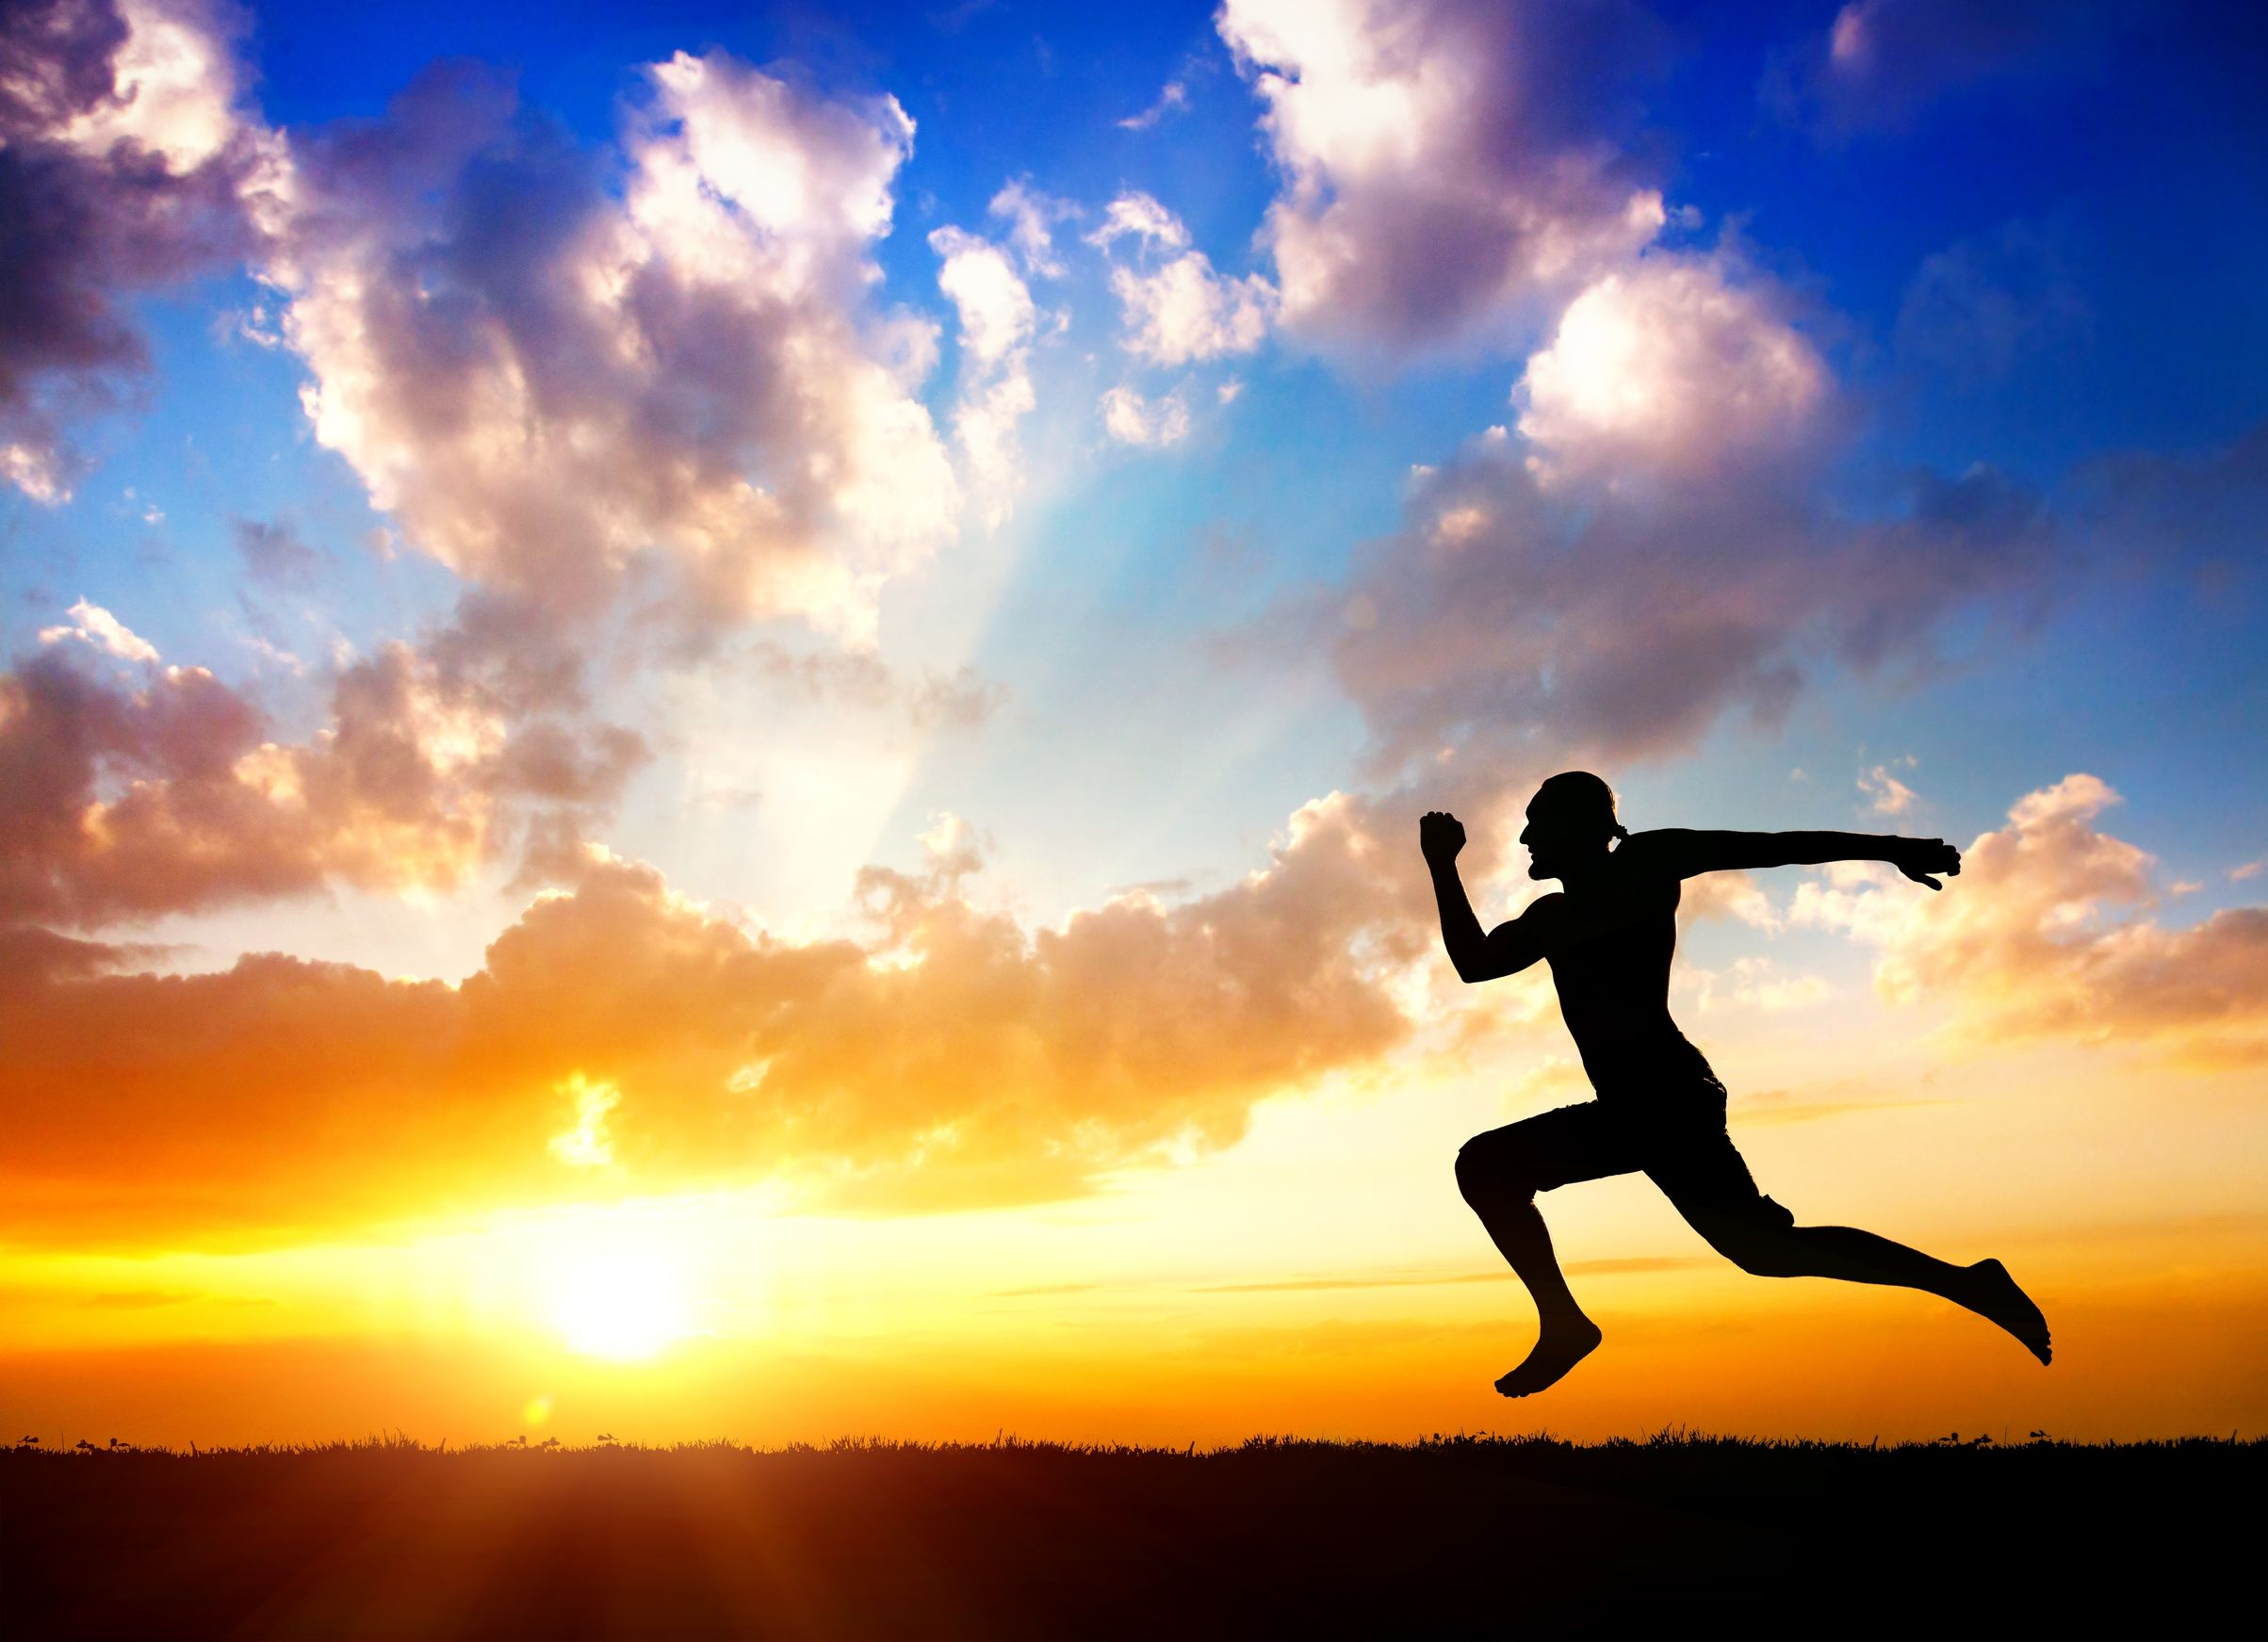 silhouette of man running towards the sun at cloudy background